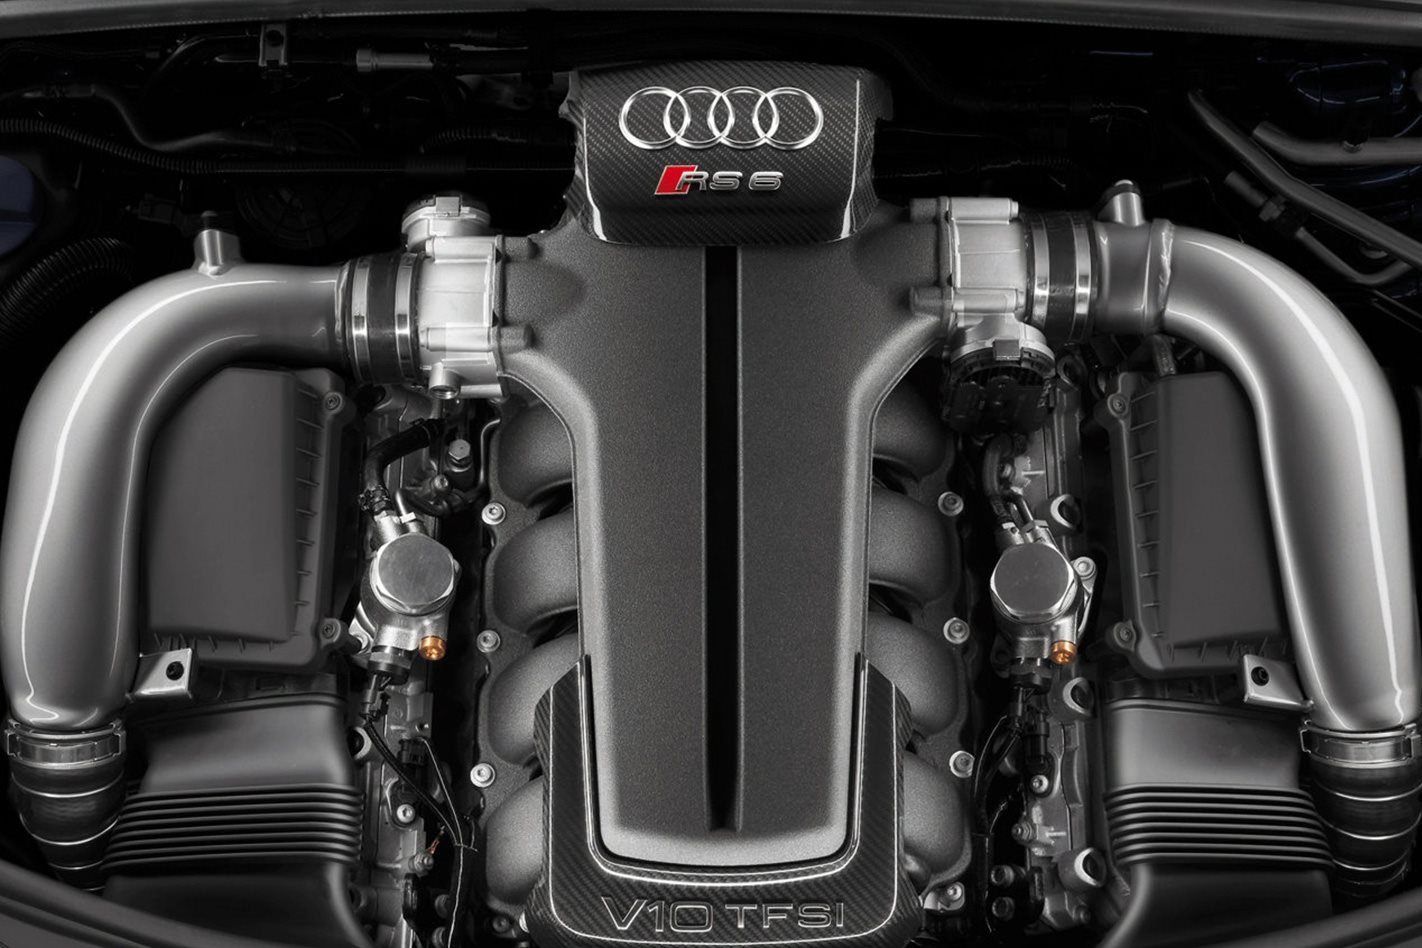 2008 Audi RS6 Avant engine